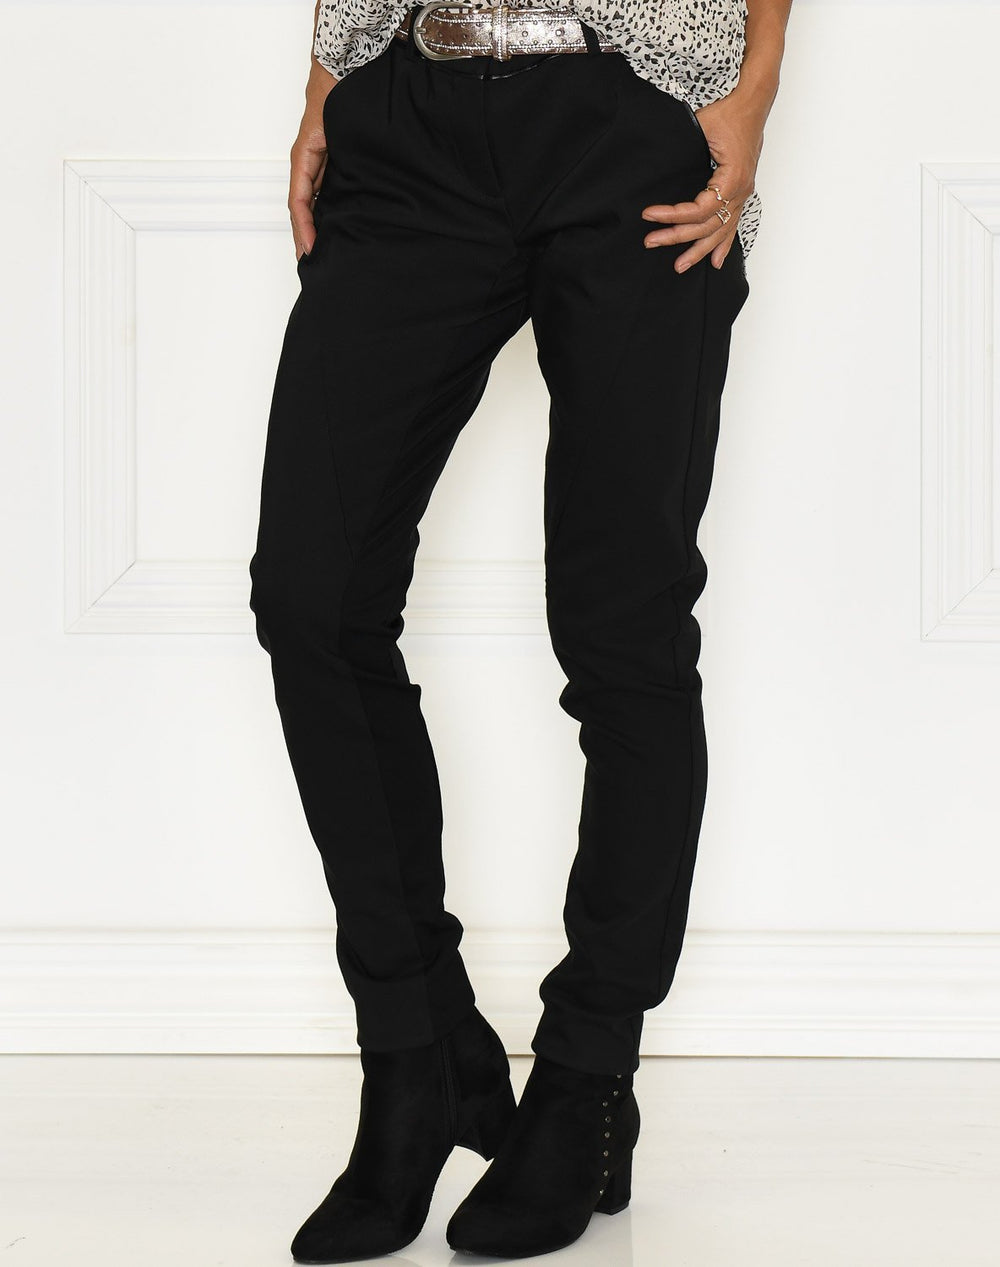 Fransa ZACity 3 pants black - Online-Mode